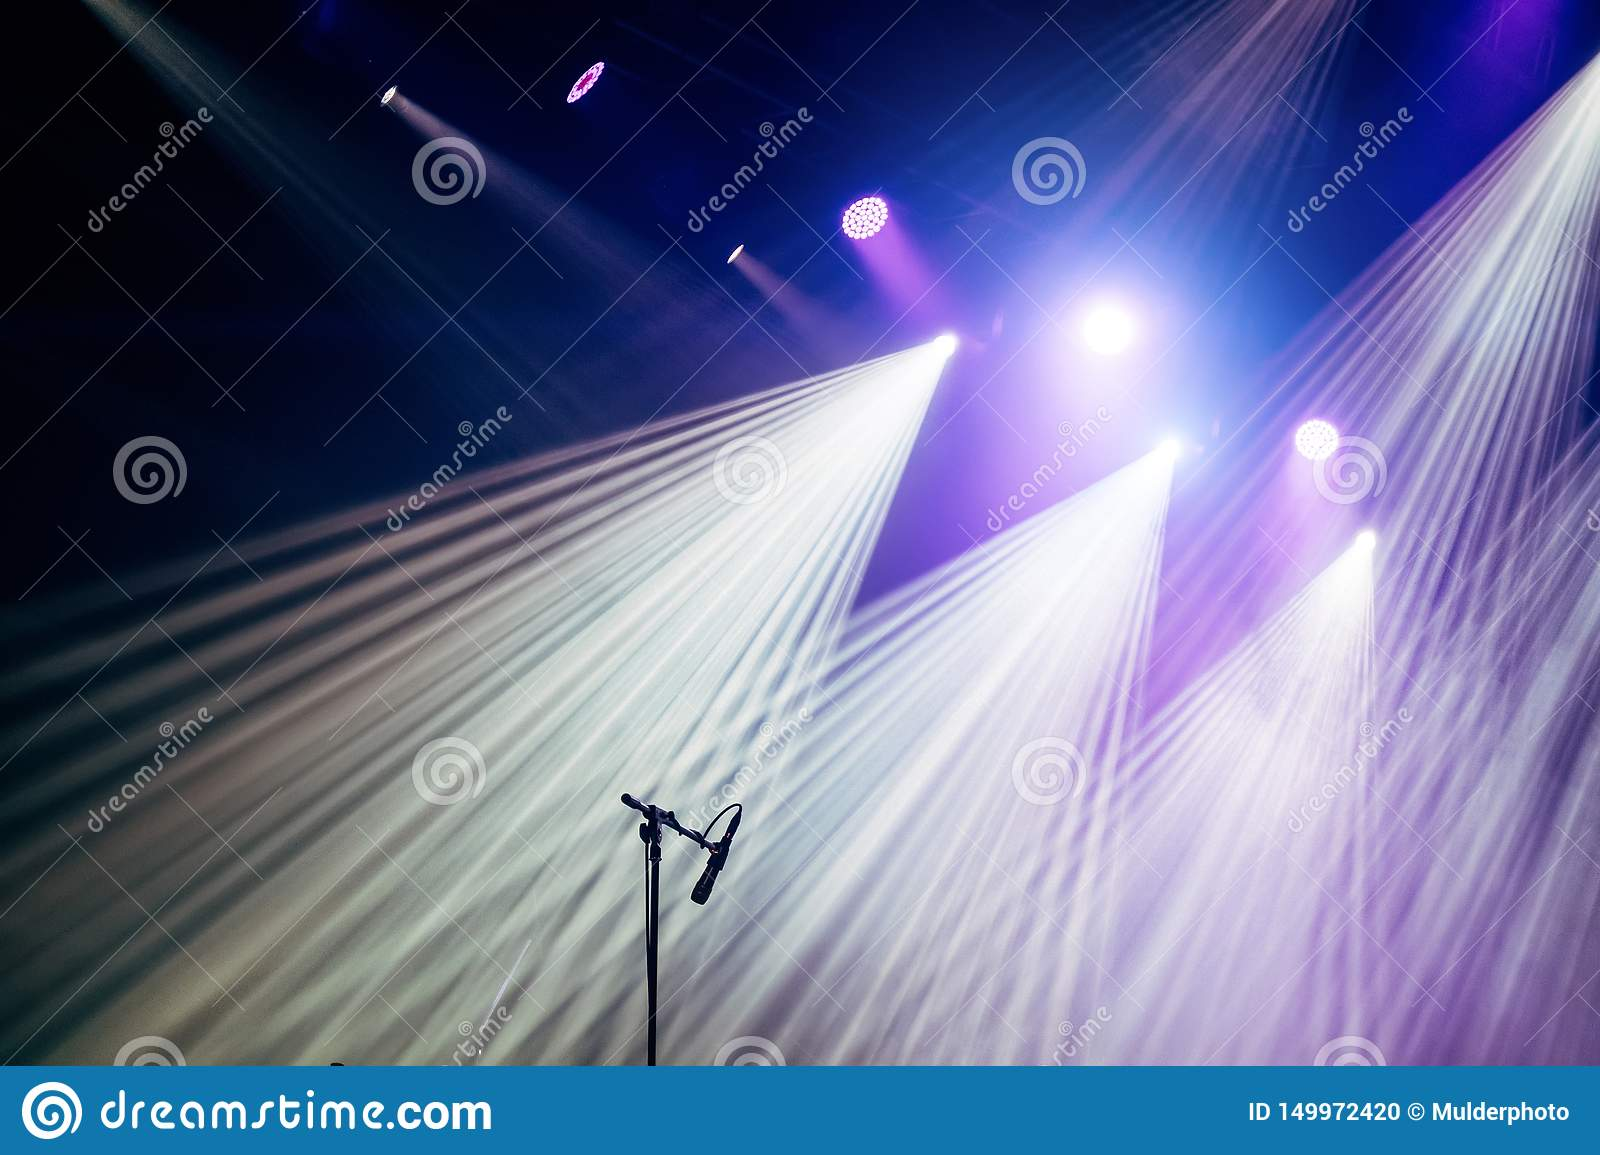 Microphone and bright rays of light on stage before the concert begins